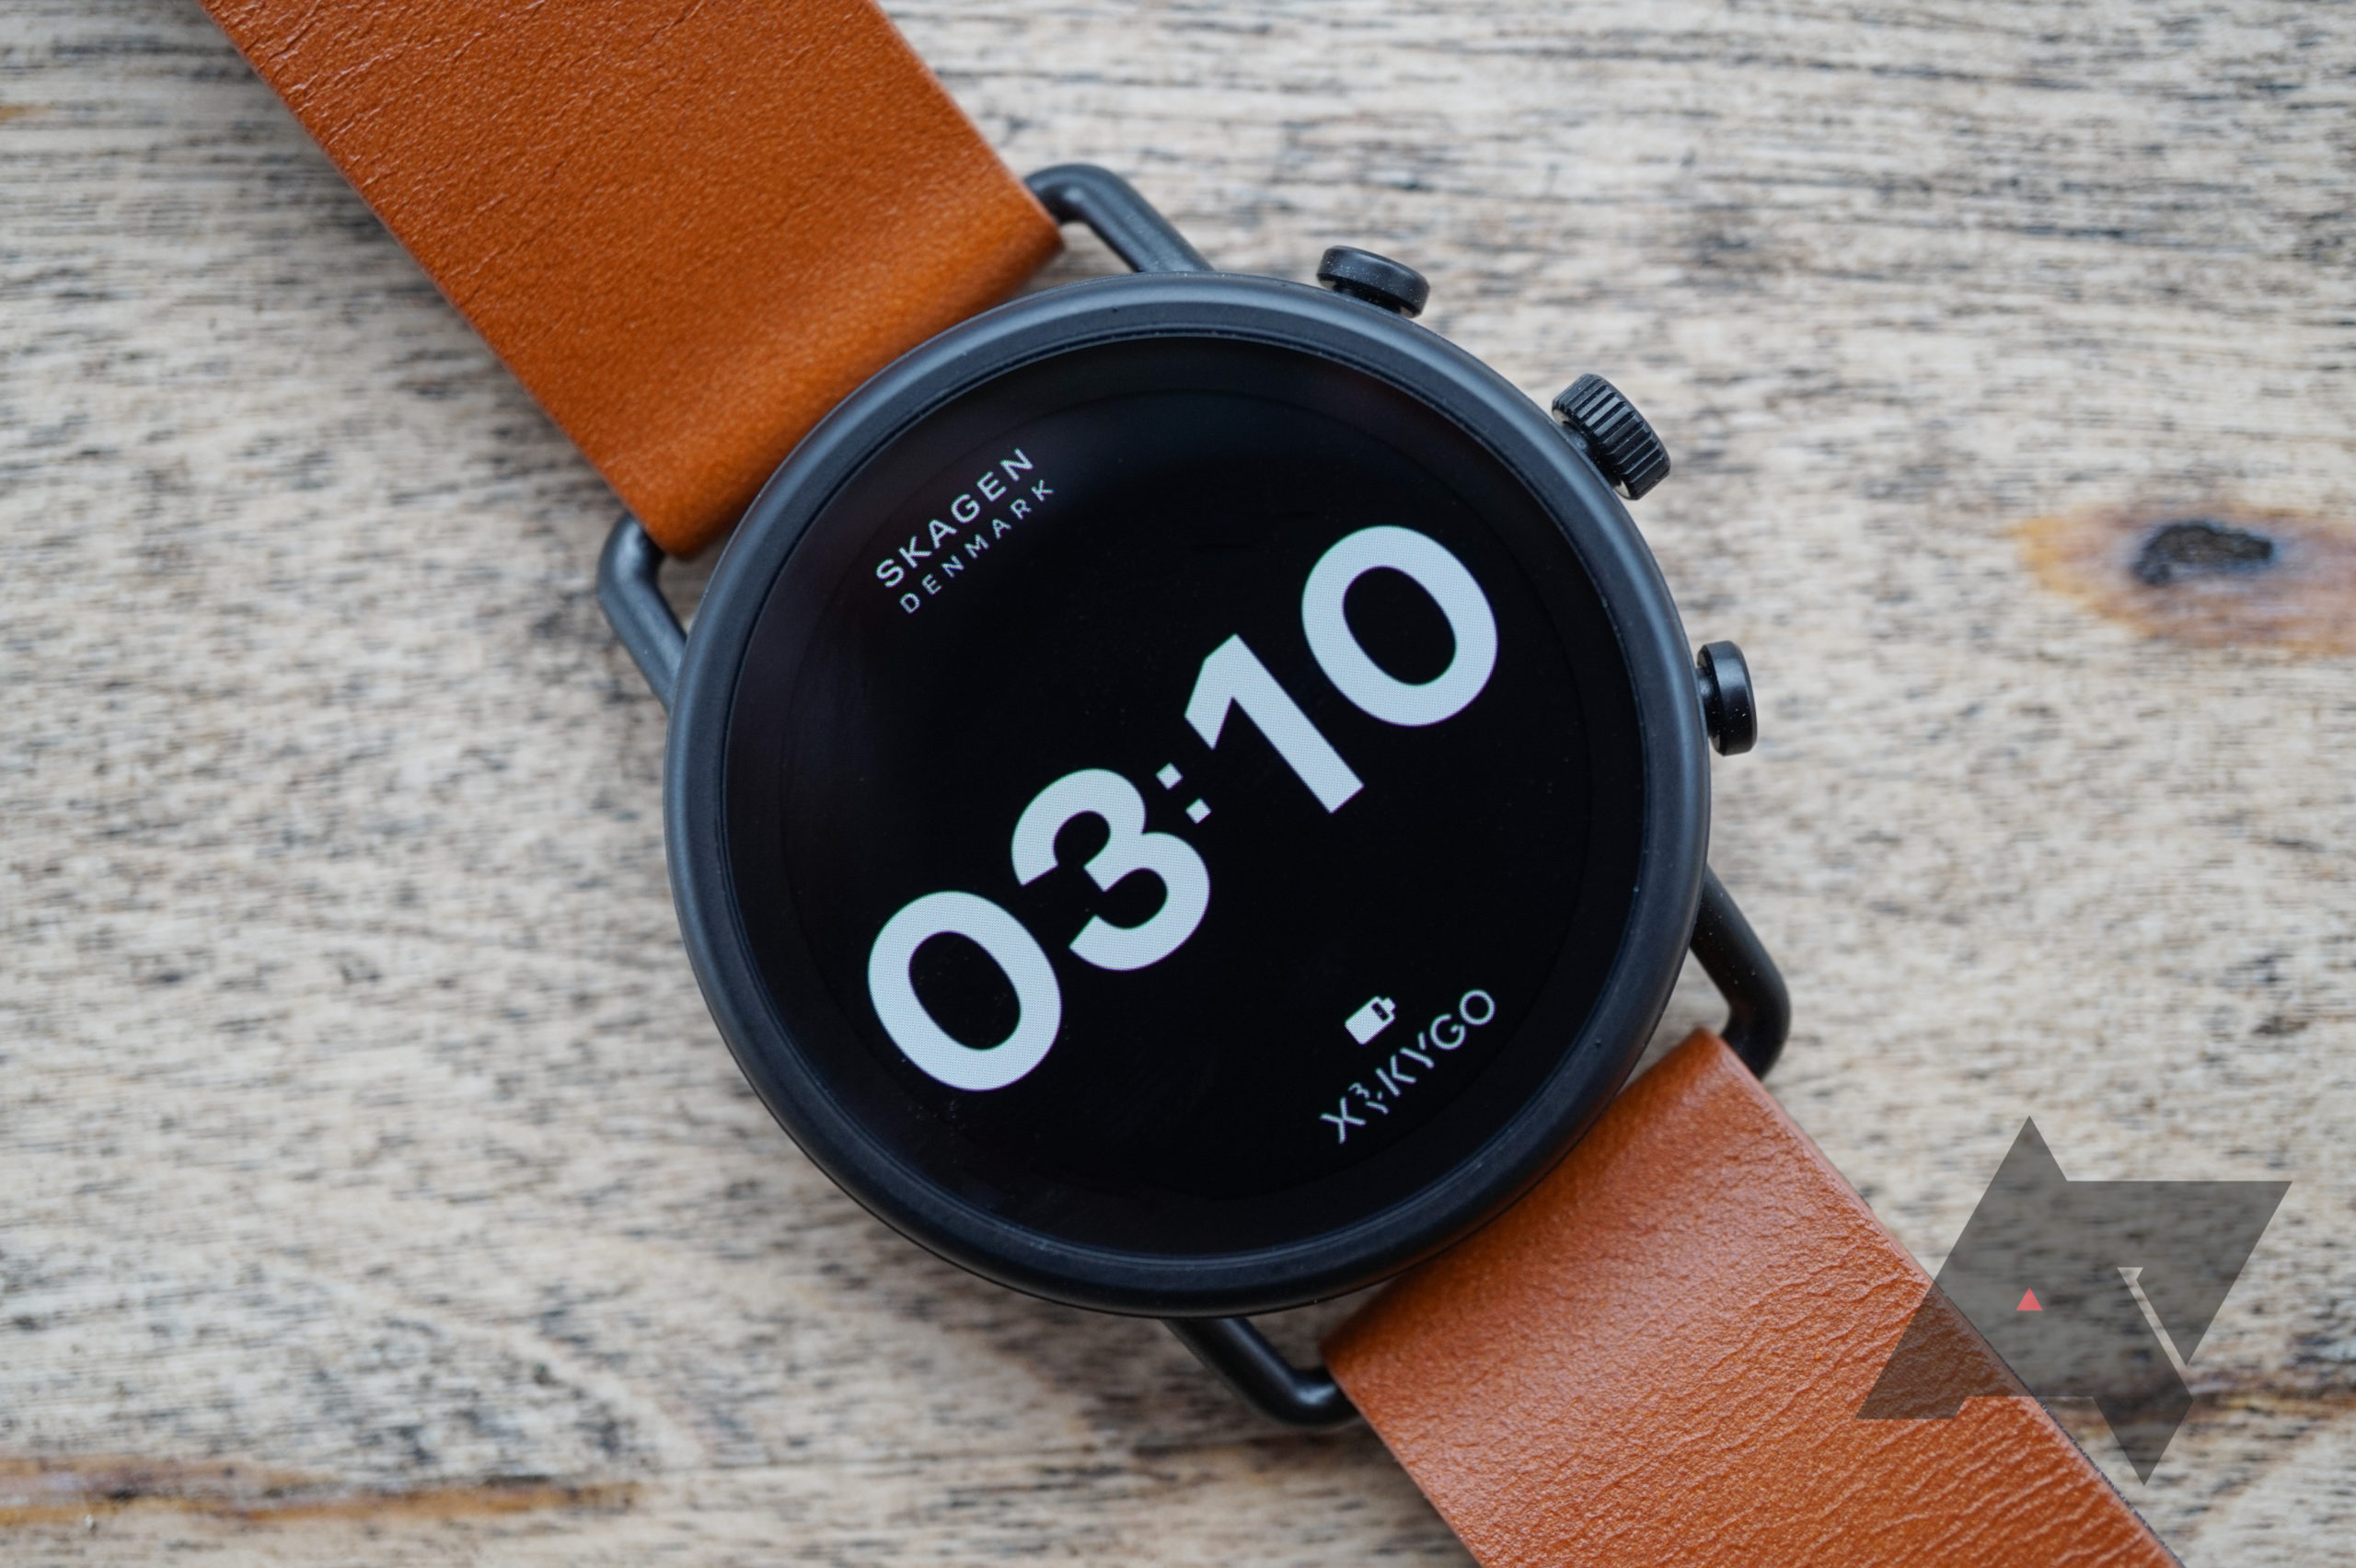 Skagen's Falster 3 Wear OS smartwatch with Wear 3100 SoC drops to $238 ($56 off)